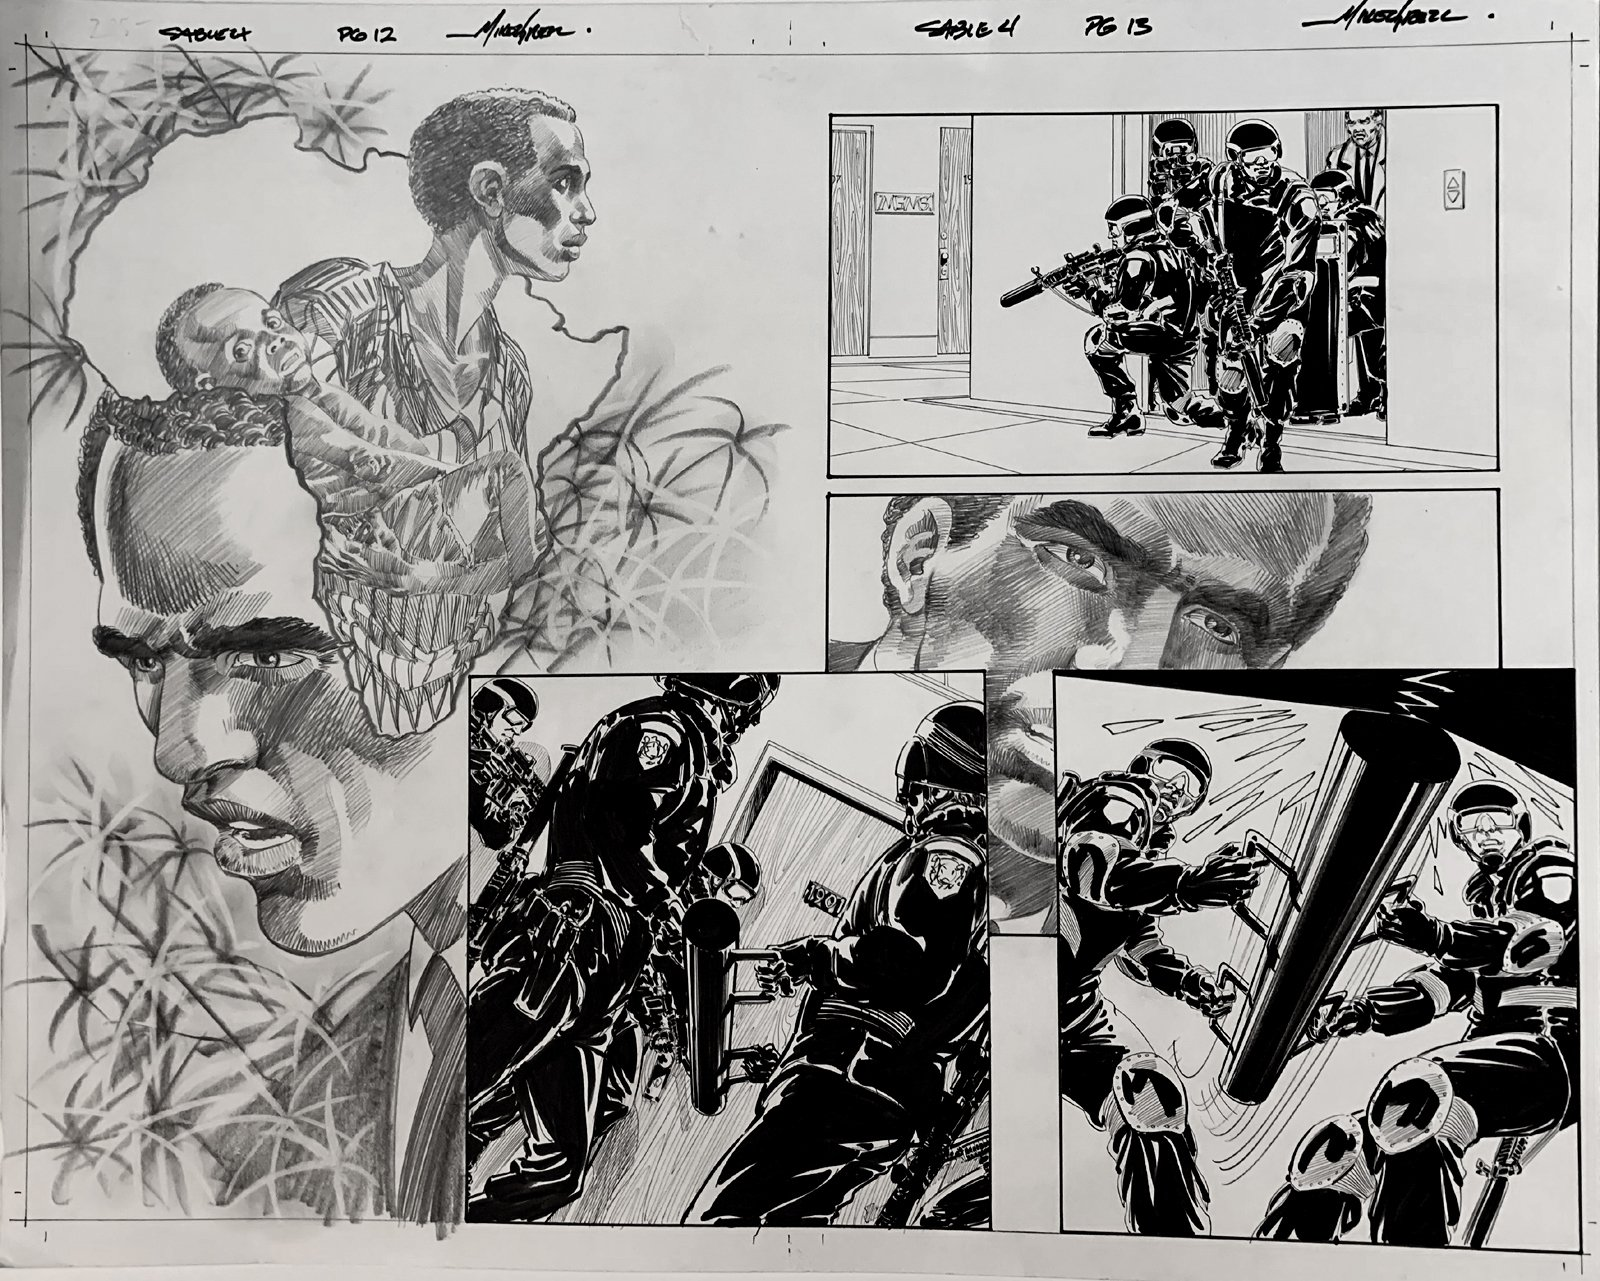 Jon Sable, Freelance: Bloodtrail #4 p 12-13 Huge Double Page Spread On 1 Large Board! (2005)